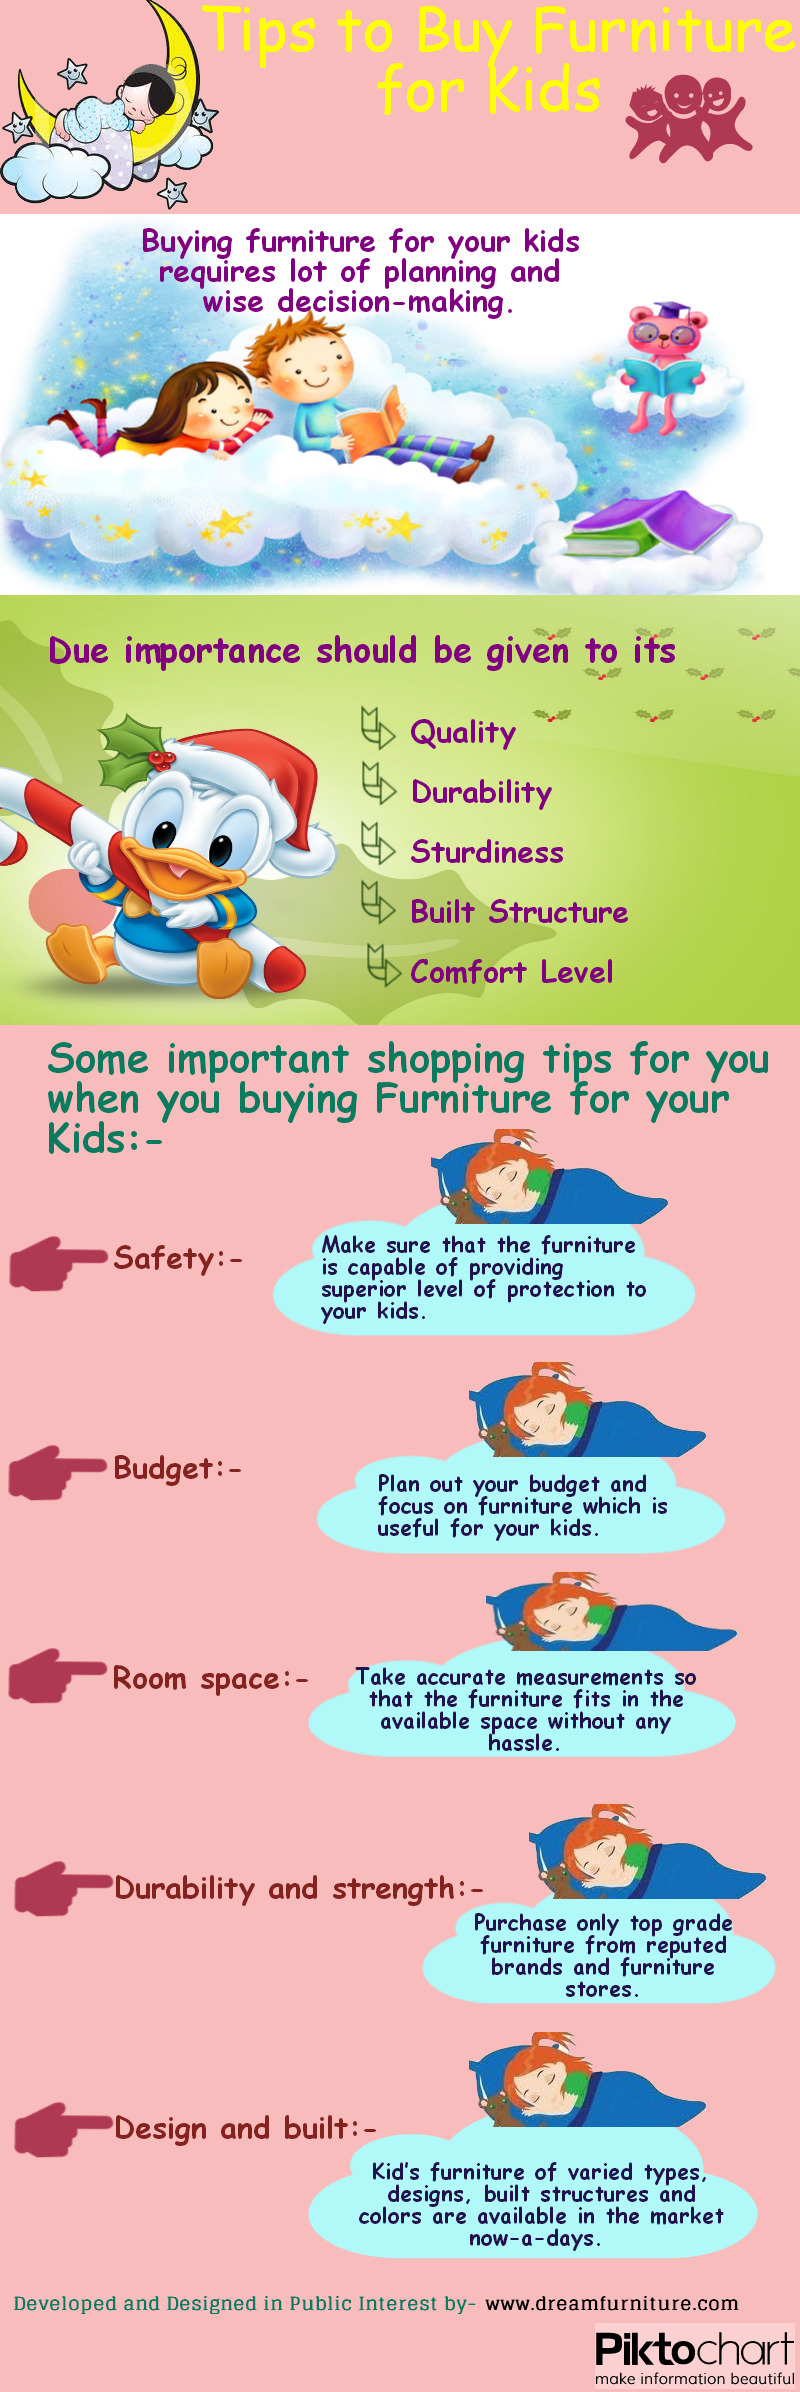 tips-to-buy-furniture-for-your-kids_526109e5d5f8a